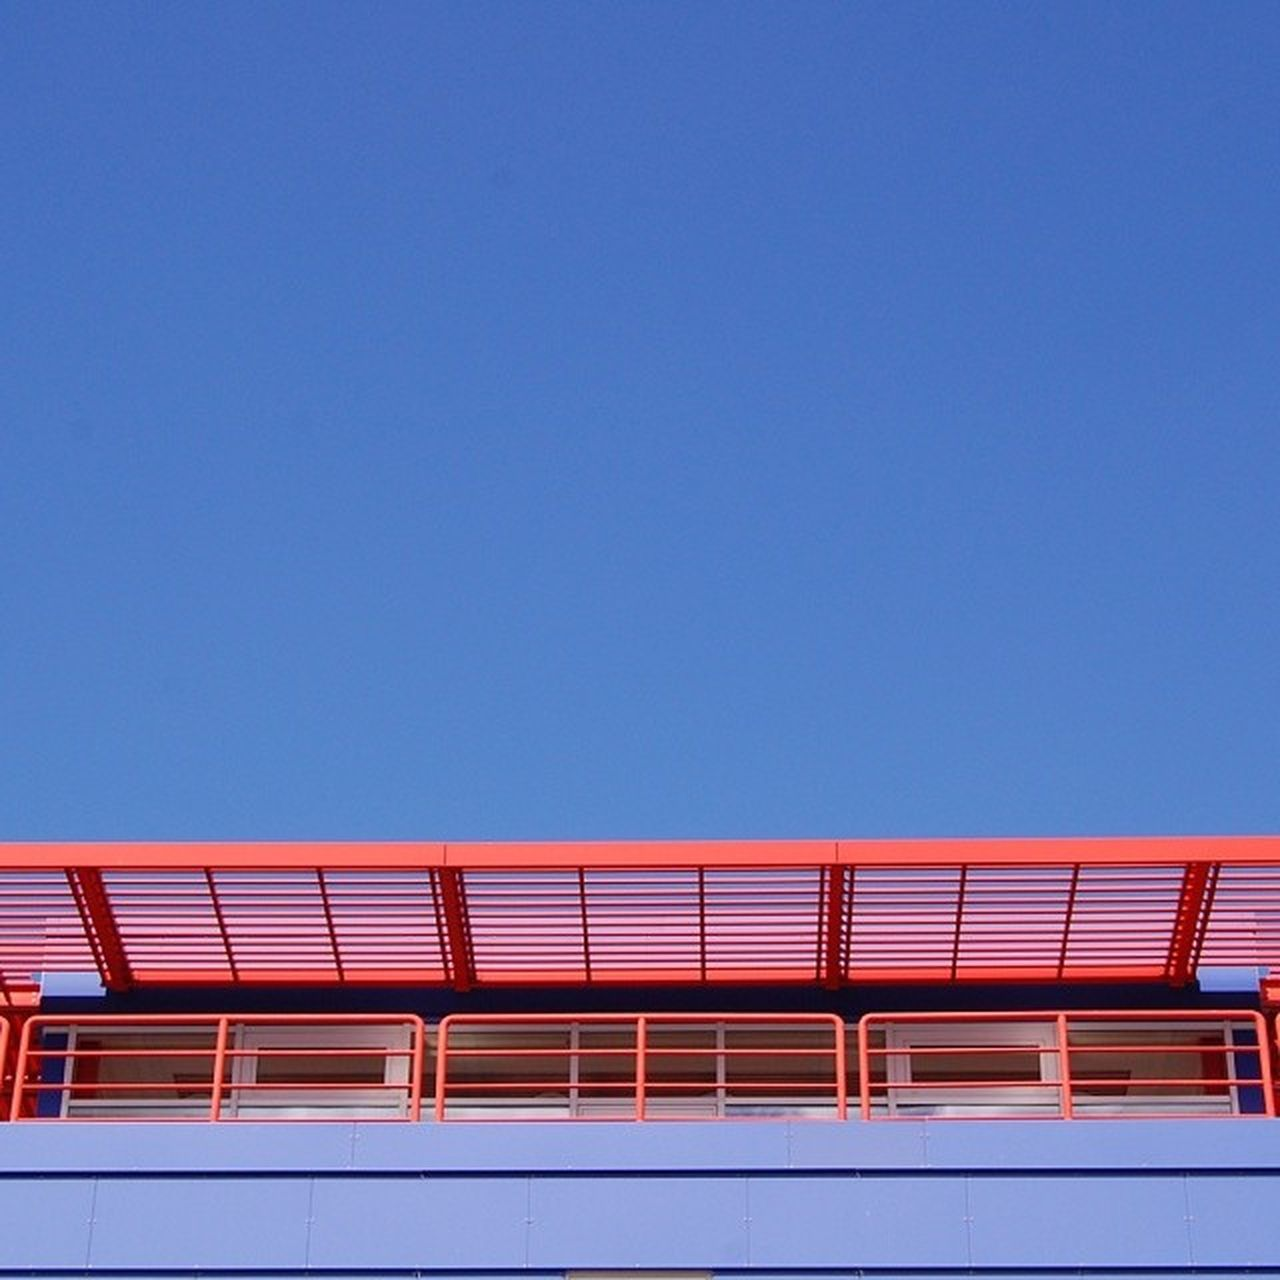 BLUE AND RED IN SYMMETRY Ip_photo_of_day Ip_gallery_week31_symmetry